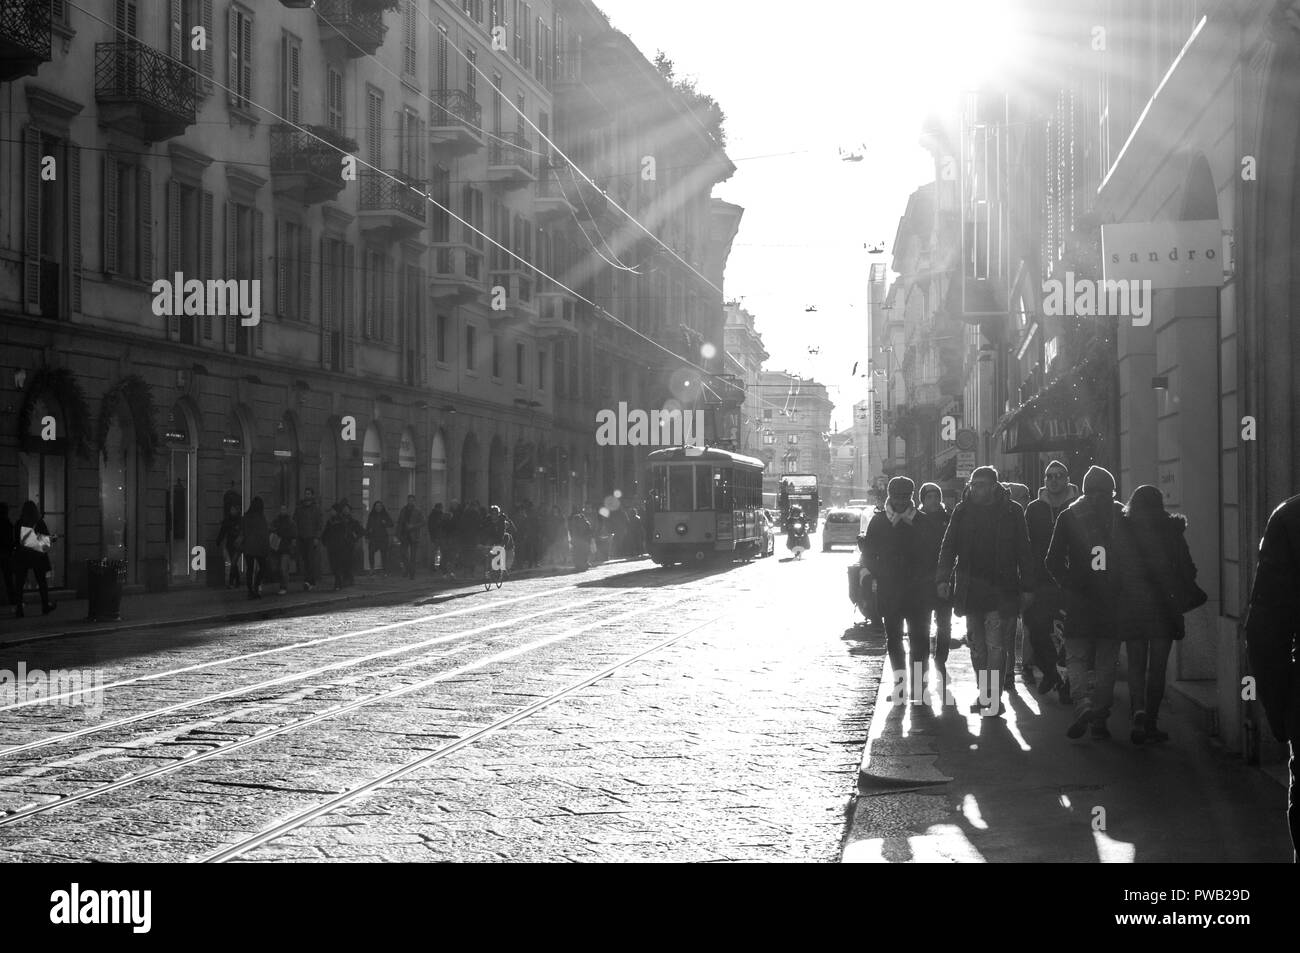 Milan, Italy - 30 Dec, 2017 - People walking down the street in Milan - Stock Image